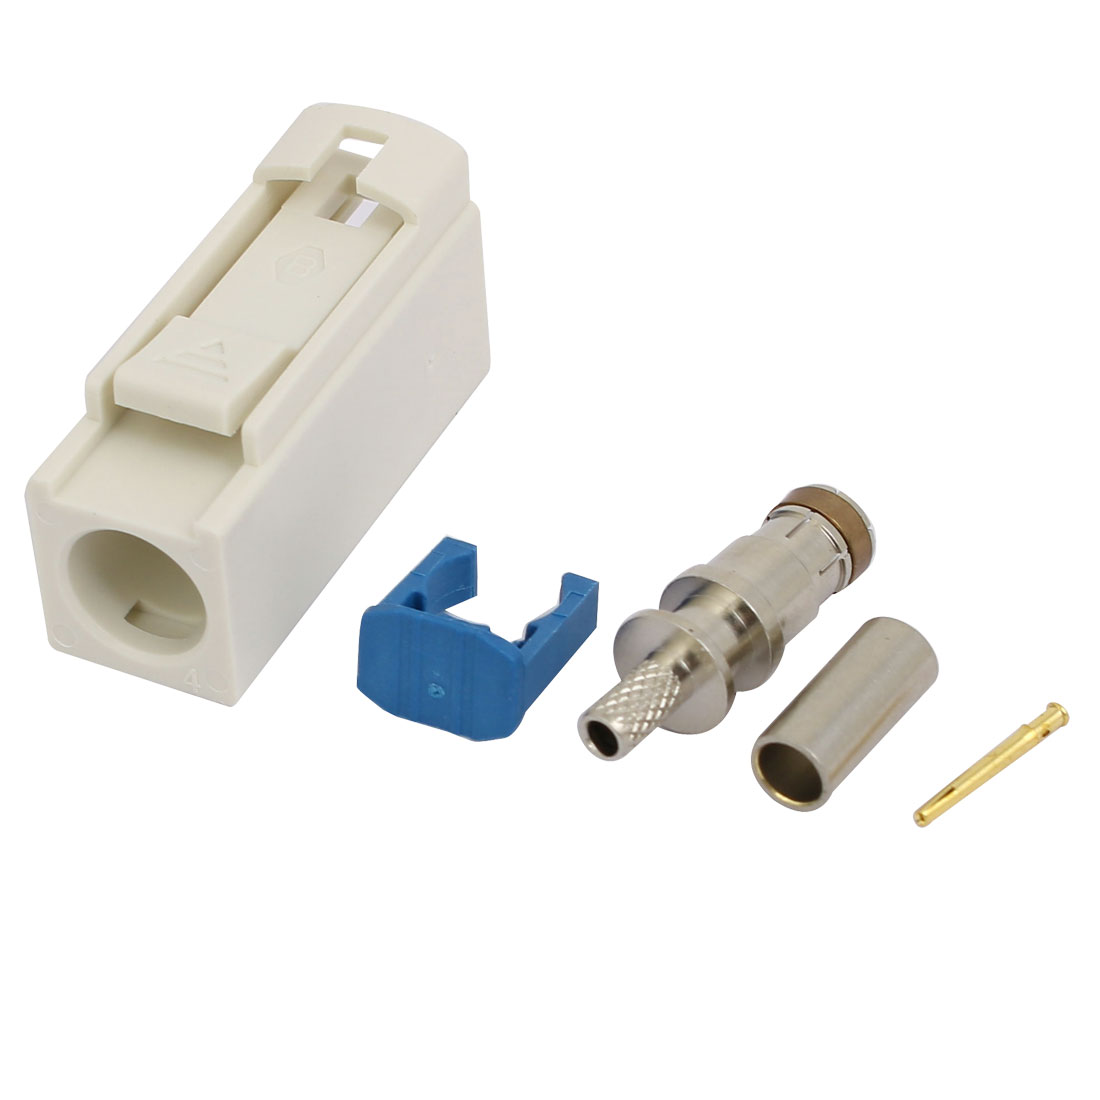 Unique Bargains FAKRA-B 0~ 6GHz 50 Ohm SH- Link RF Adapter White for RG174 Cable - image 1 of 2